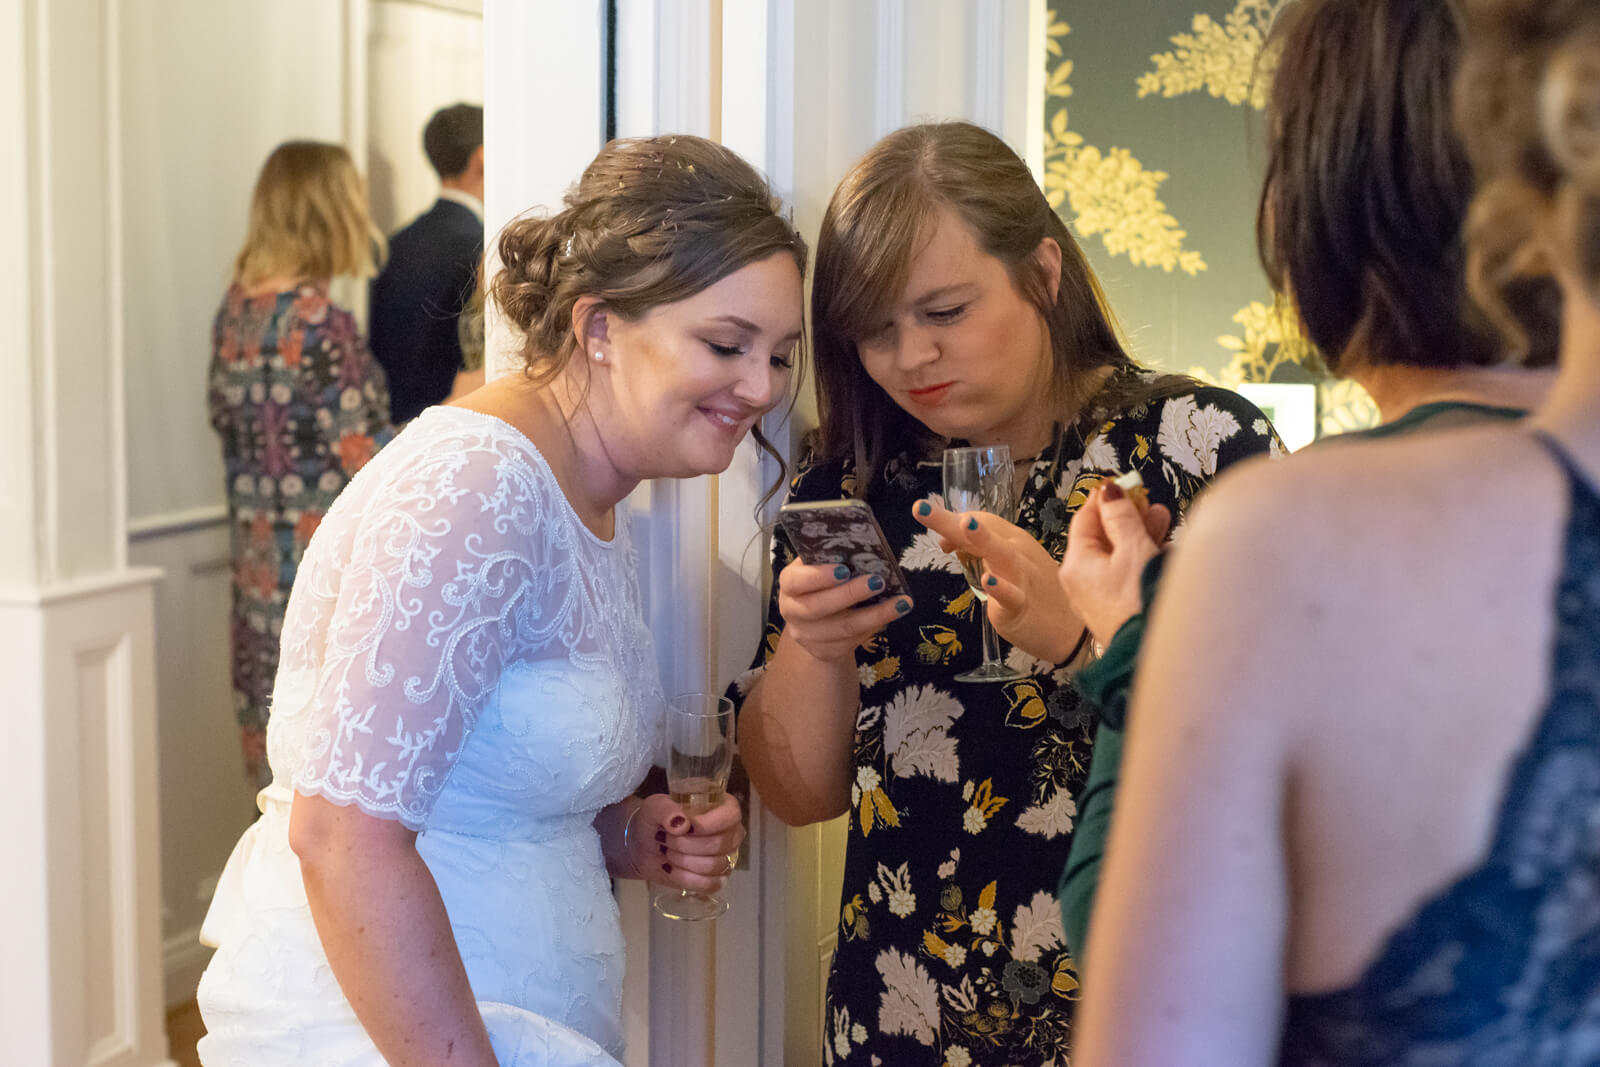 Bride and her friend laugh while looking at a mobile phone